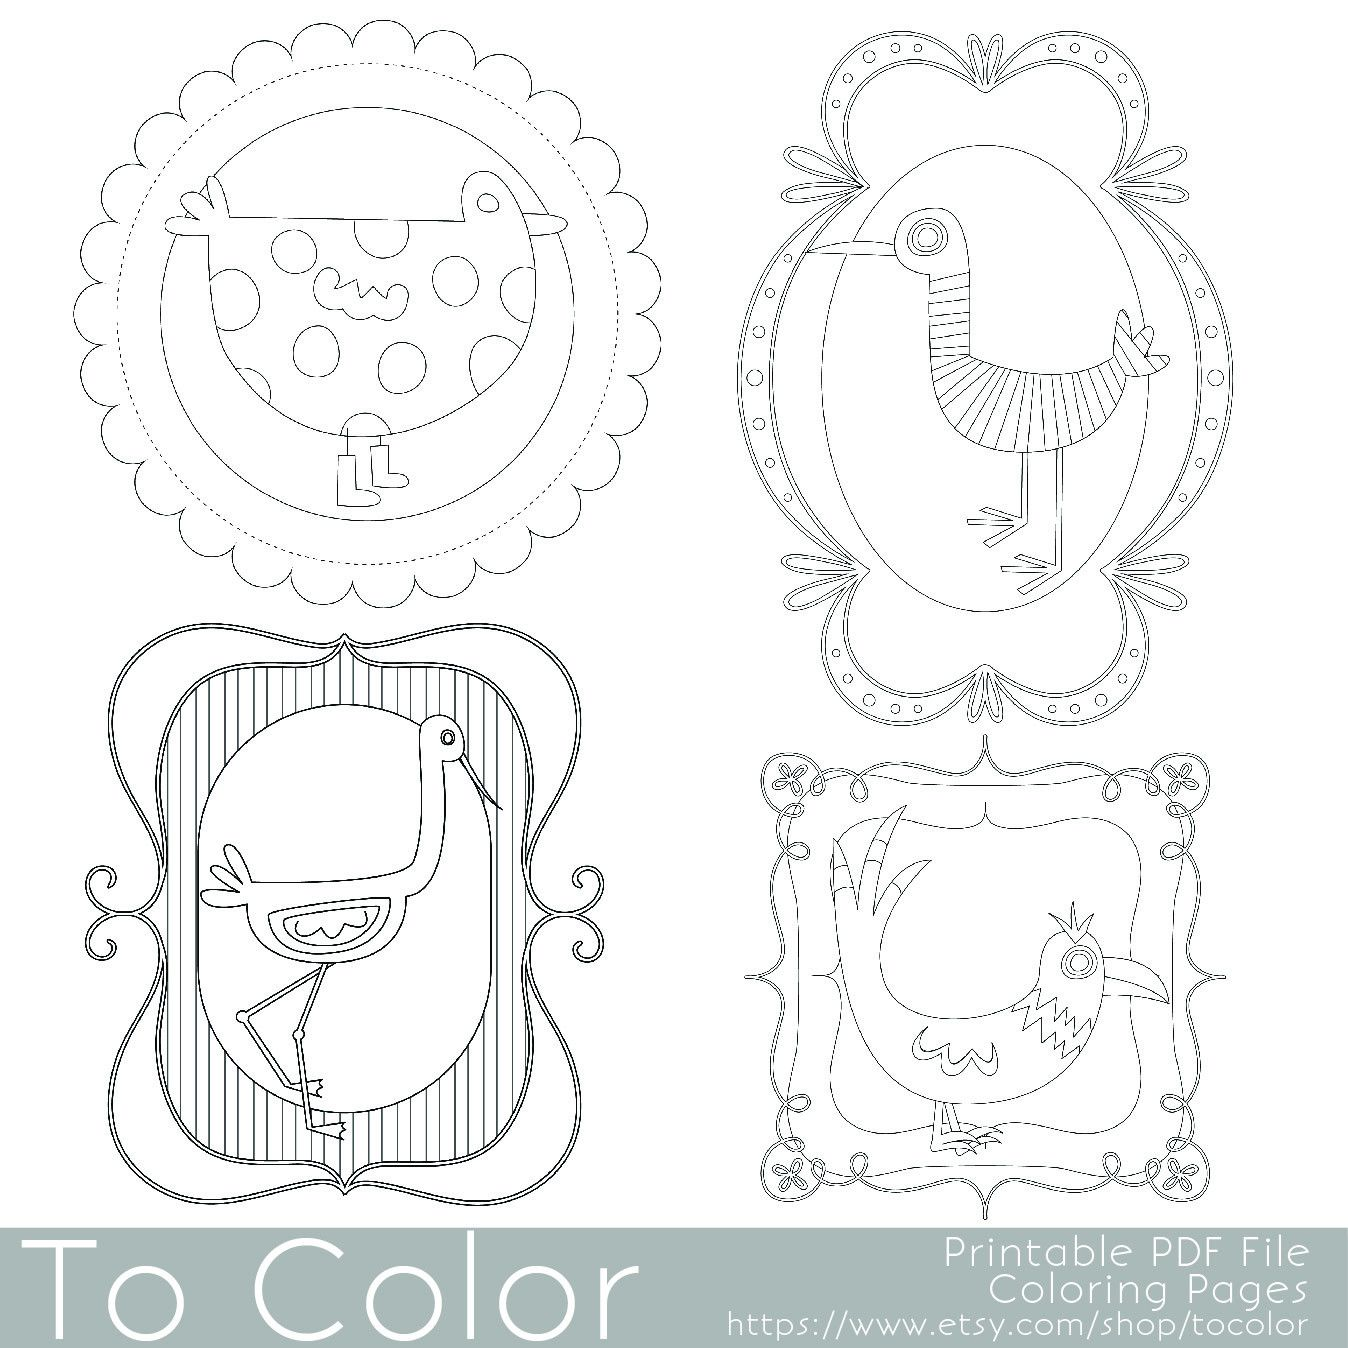 Here Are 4 Whimsical Bird Coloring Pages Designed To Fit On The